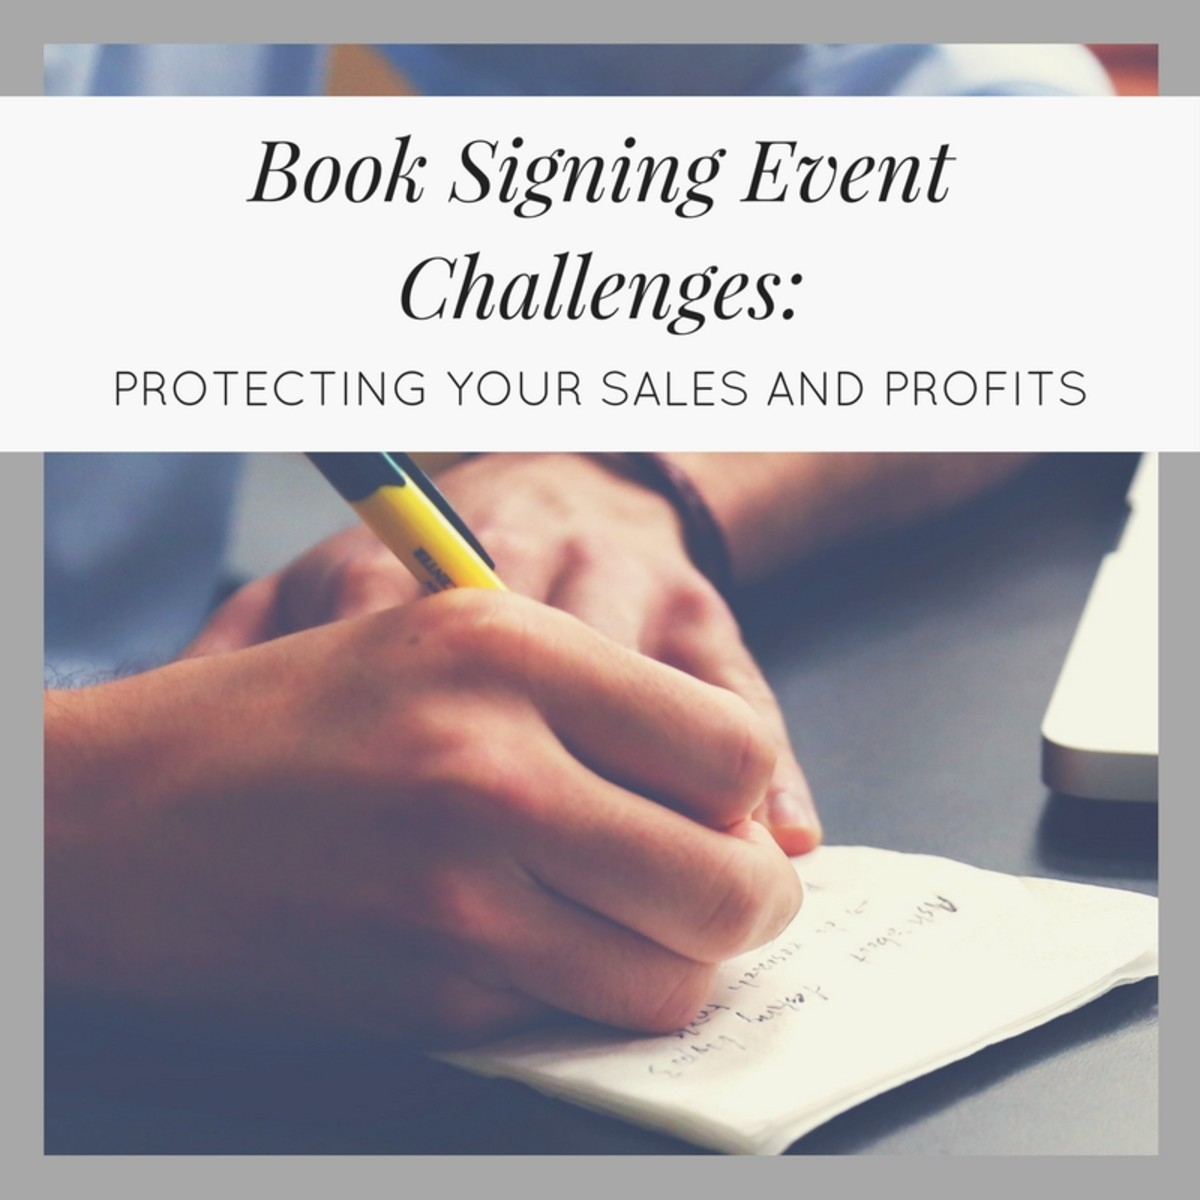 Book Signing Event Challenges: Protecting Your Sales and Profits